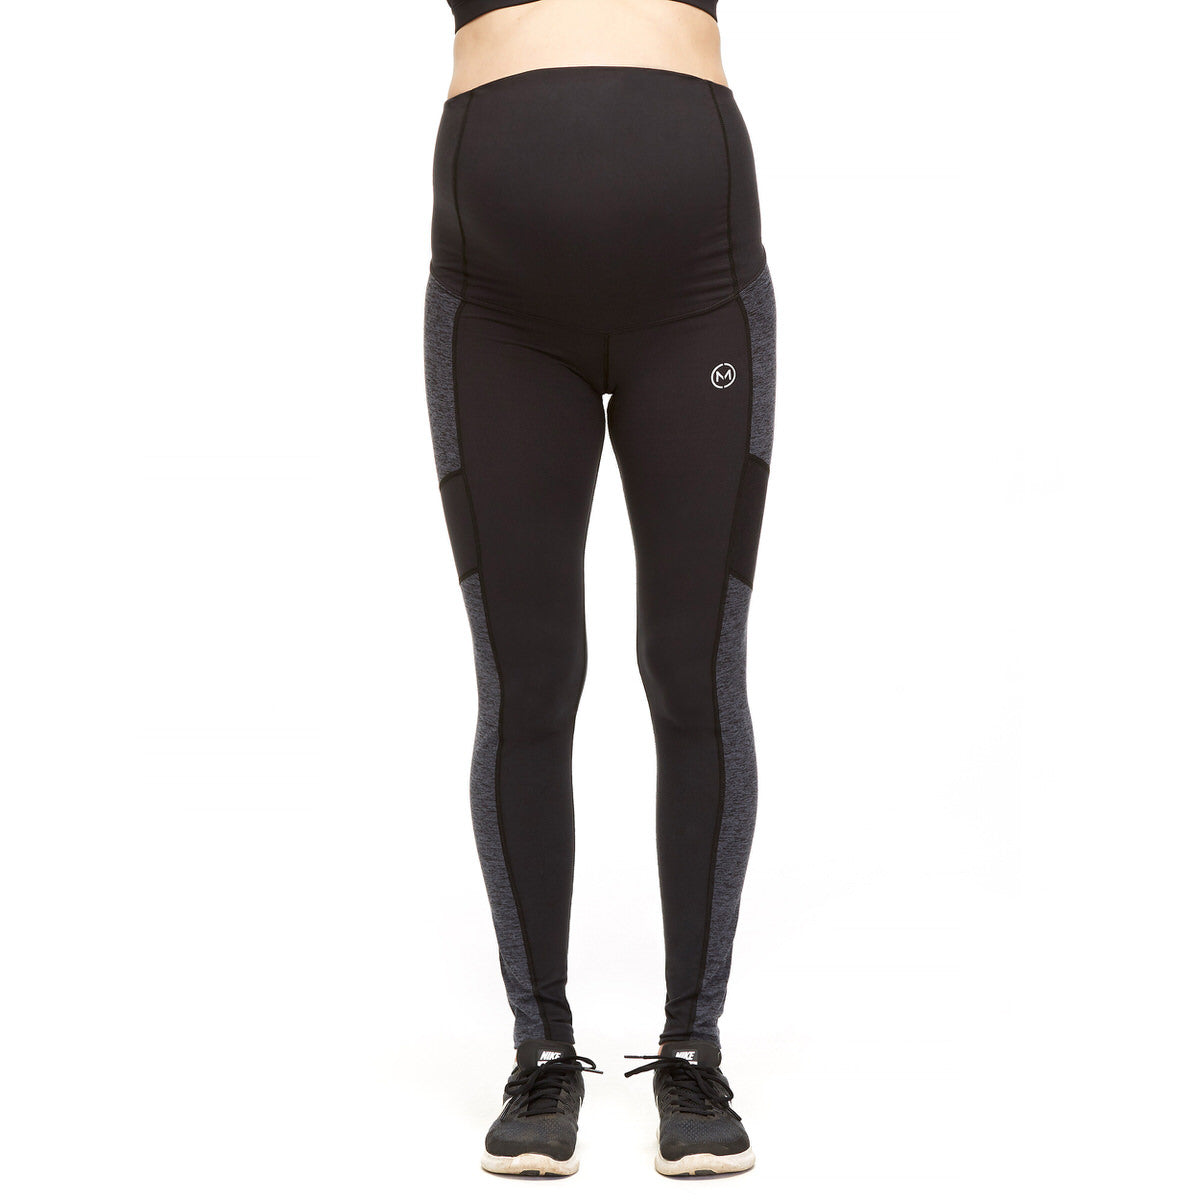 DELUX LEGGING - Active full length with fold over panel